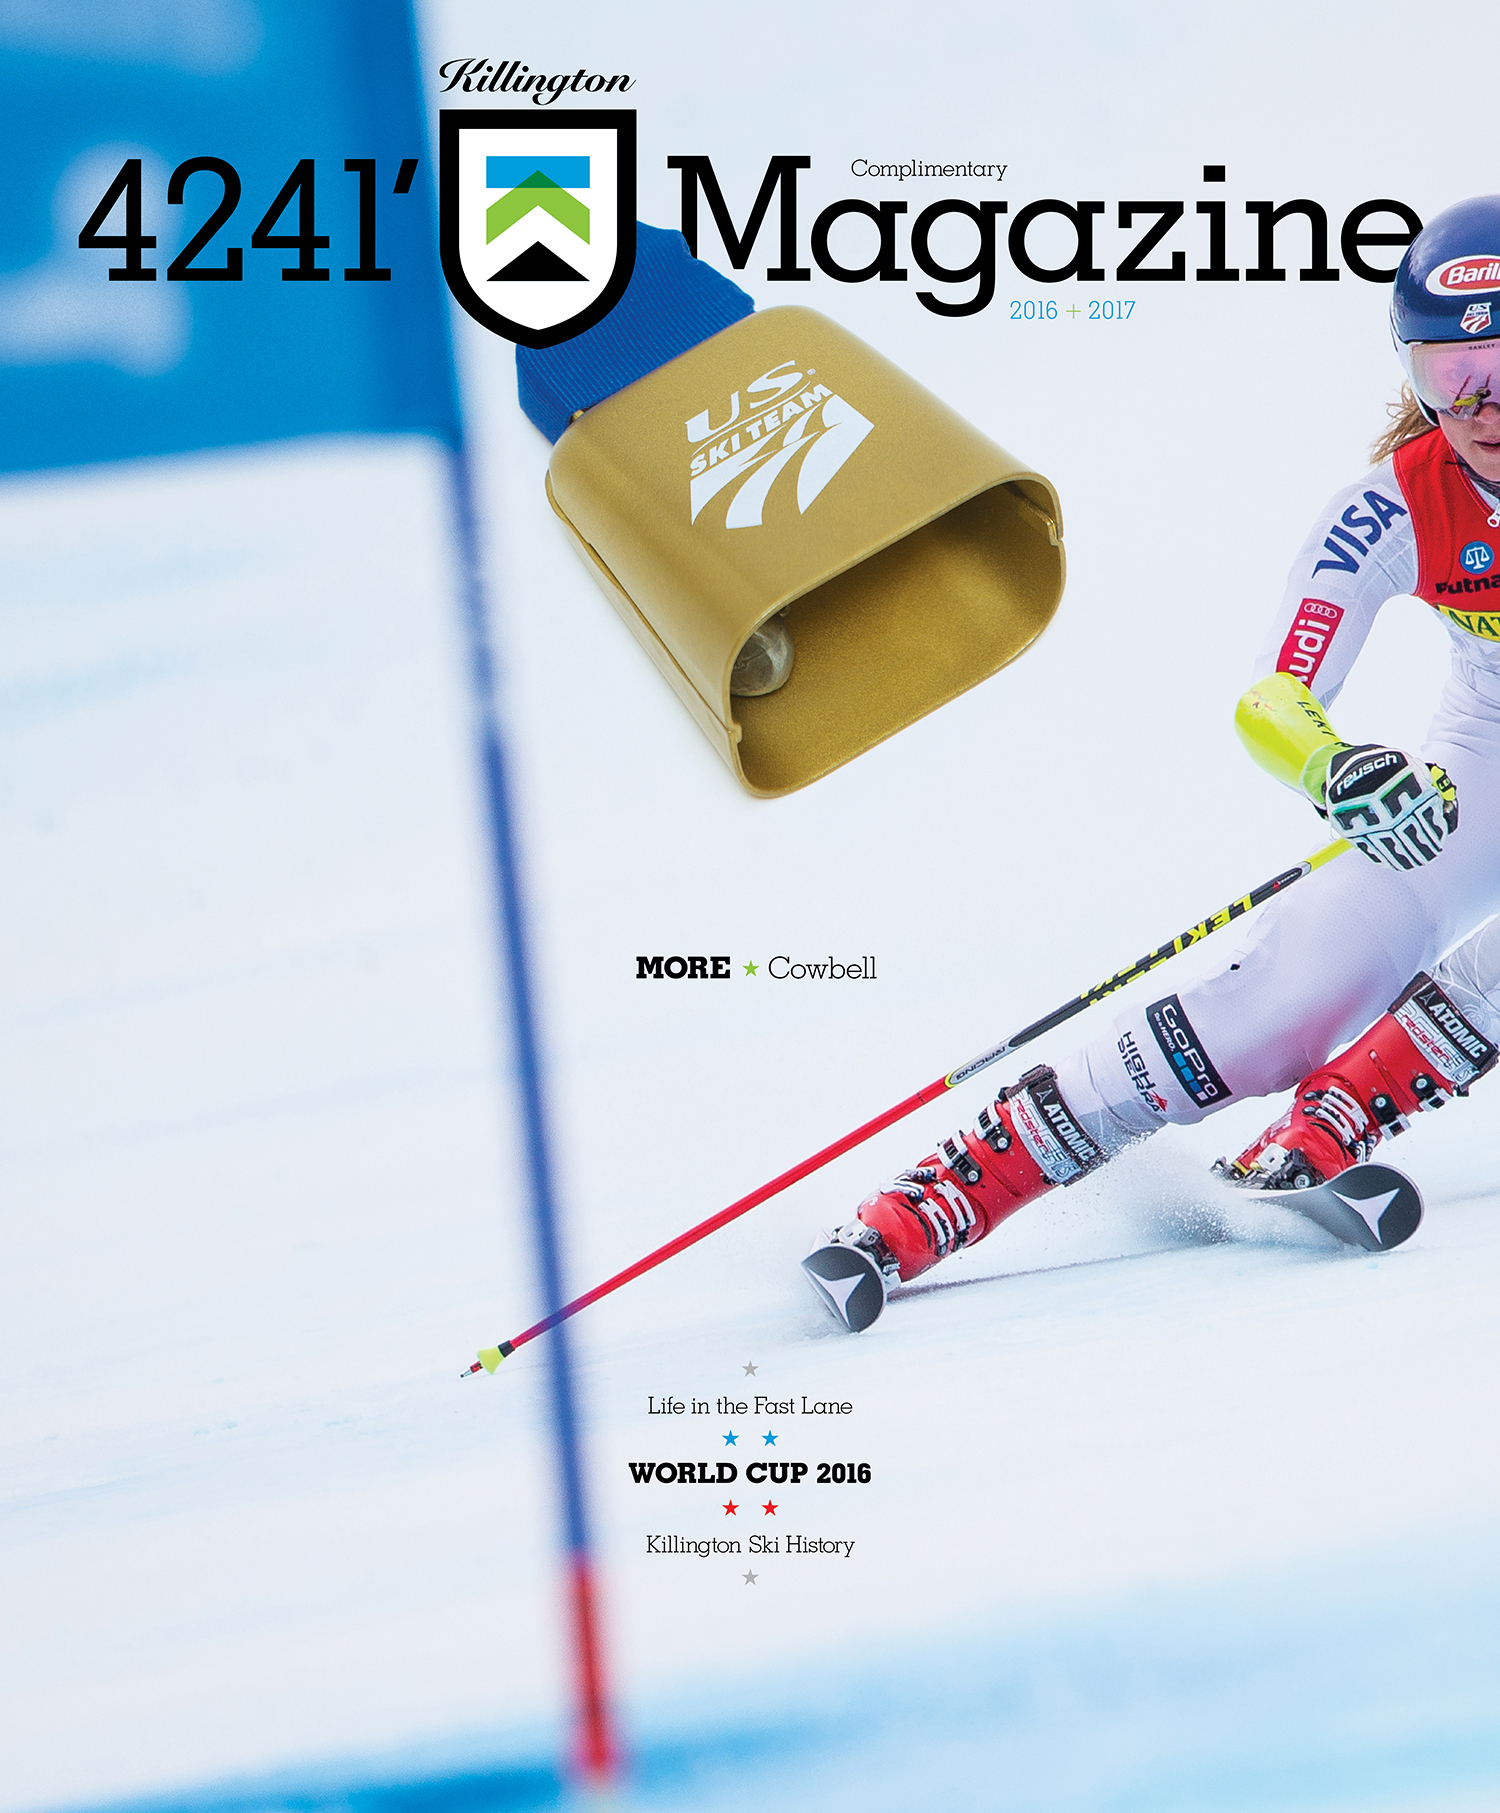 FEATURED WORK  KILLINGTON  4241' MAGAZINE , VOL 6